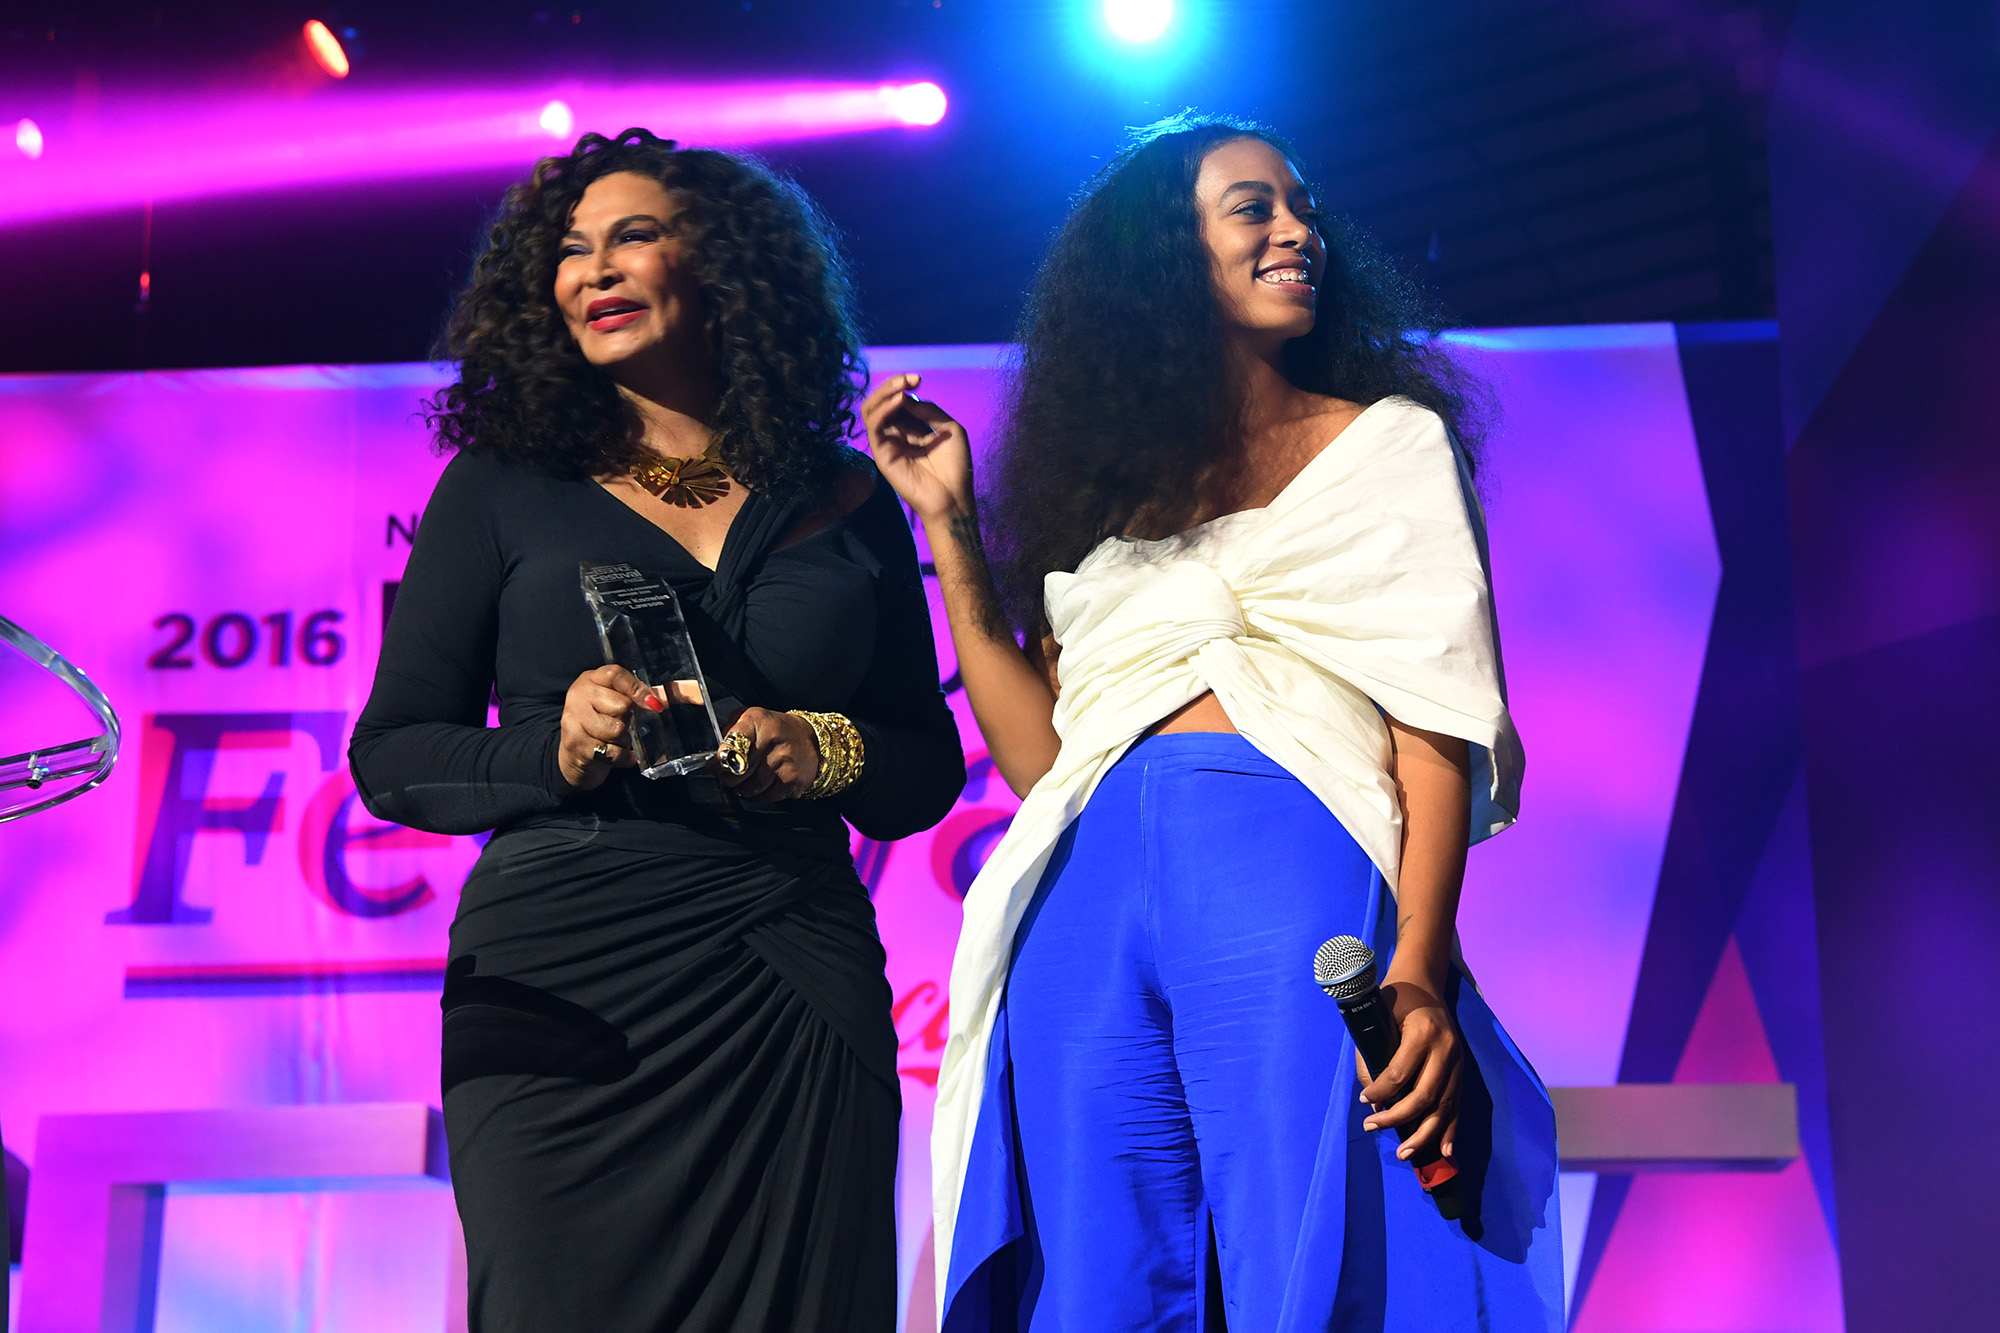 Tina Lawson Knowles and singer Solange Knowles speak on stage at the 2016 ESSENCE Festival in New Orleans, Louisiana.  (Photo by Paras Griffin/Getty Images for 2016 Essence Festival)